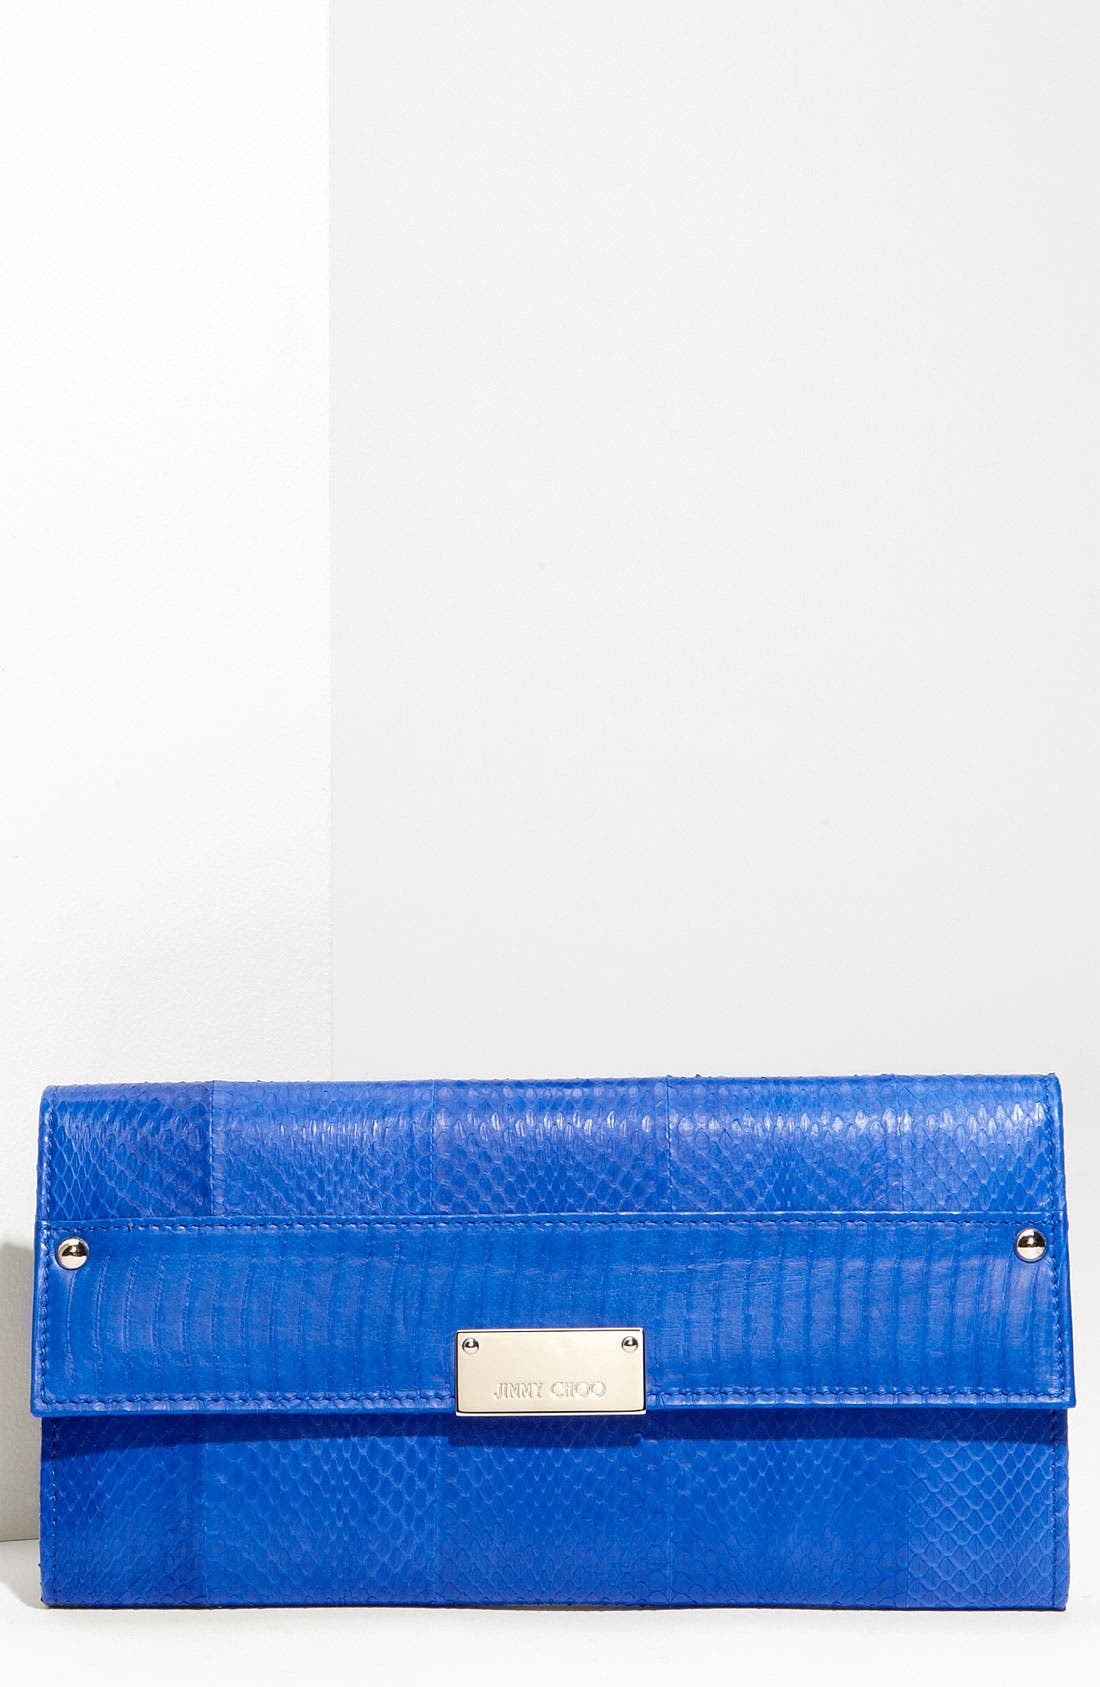 Alternate Image 1 Selected - Jimmy Choo 'Reese' Embossed Leather Clutch